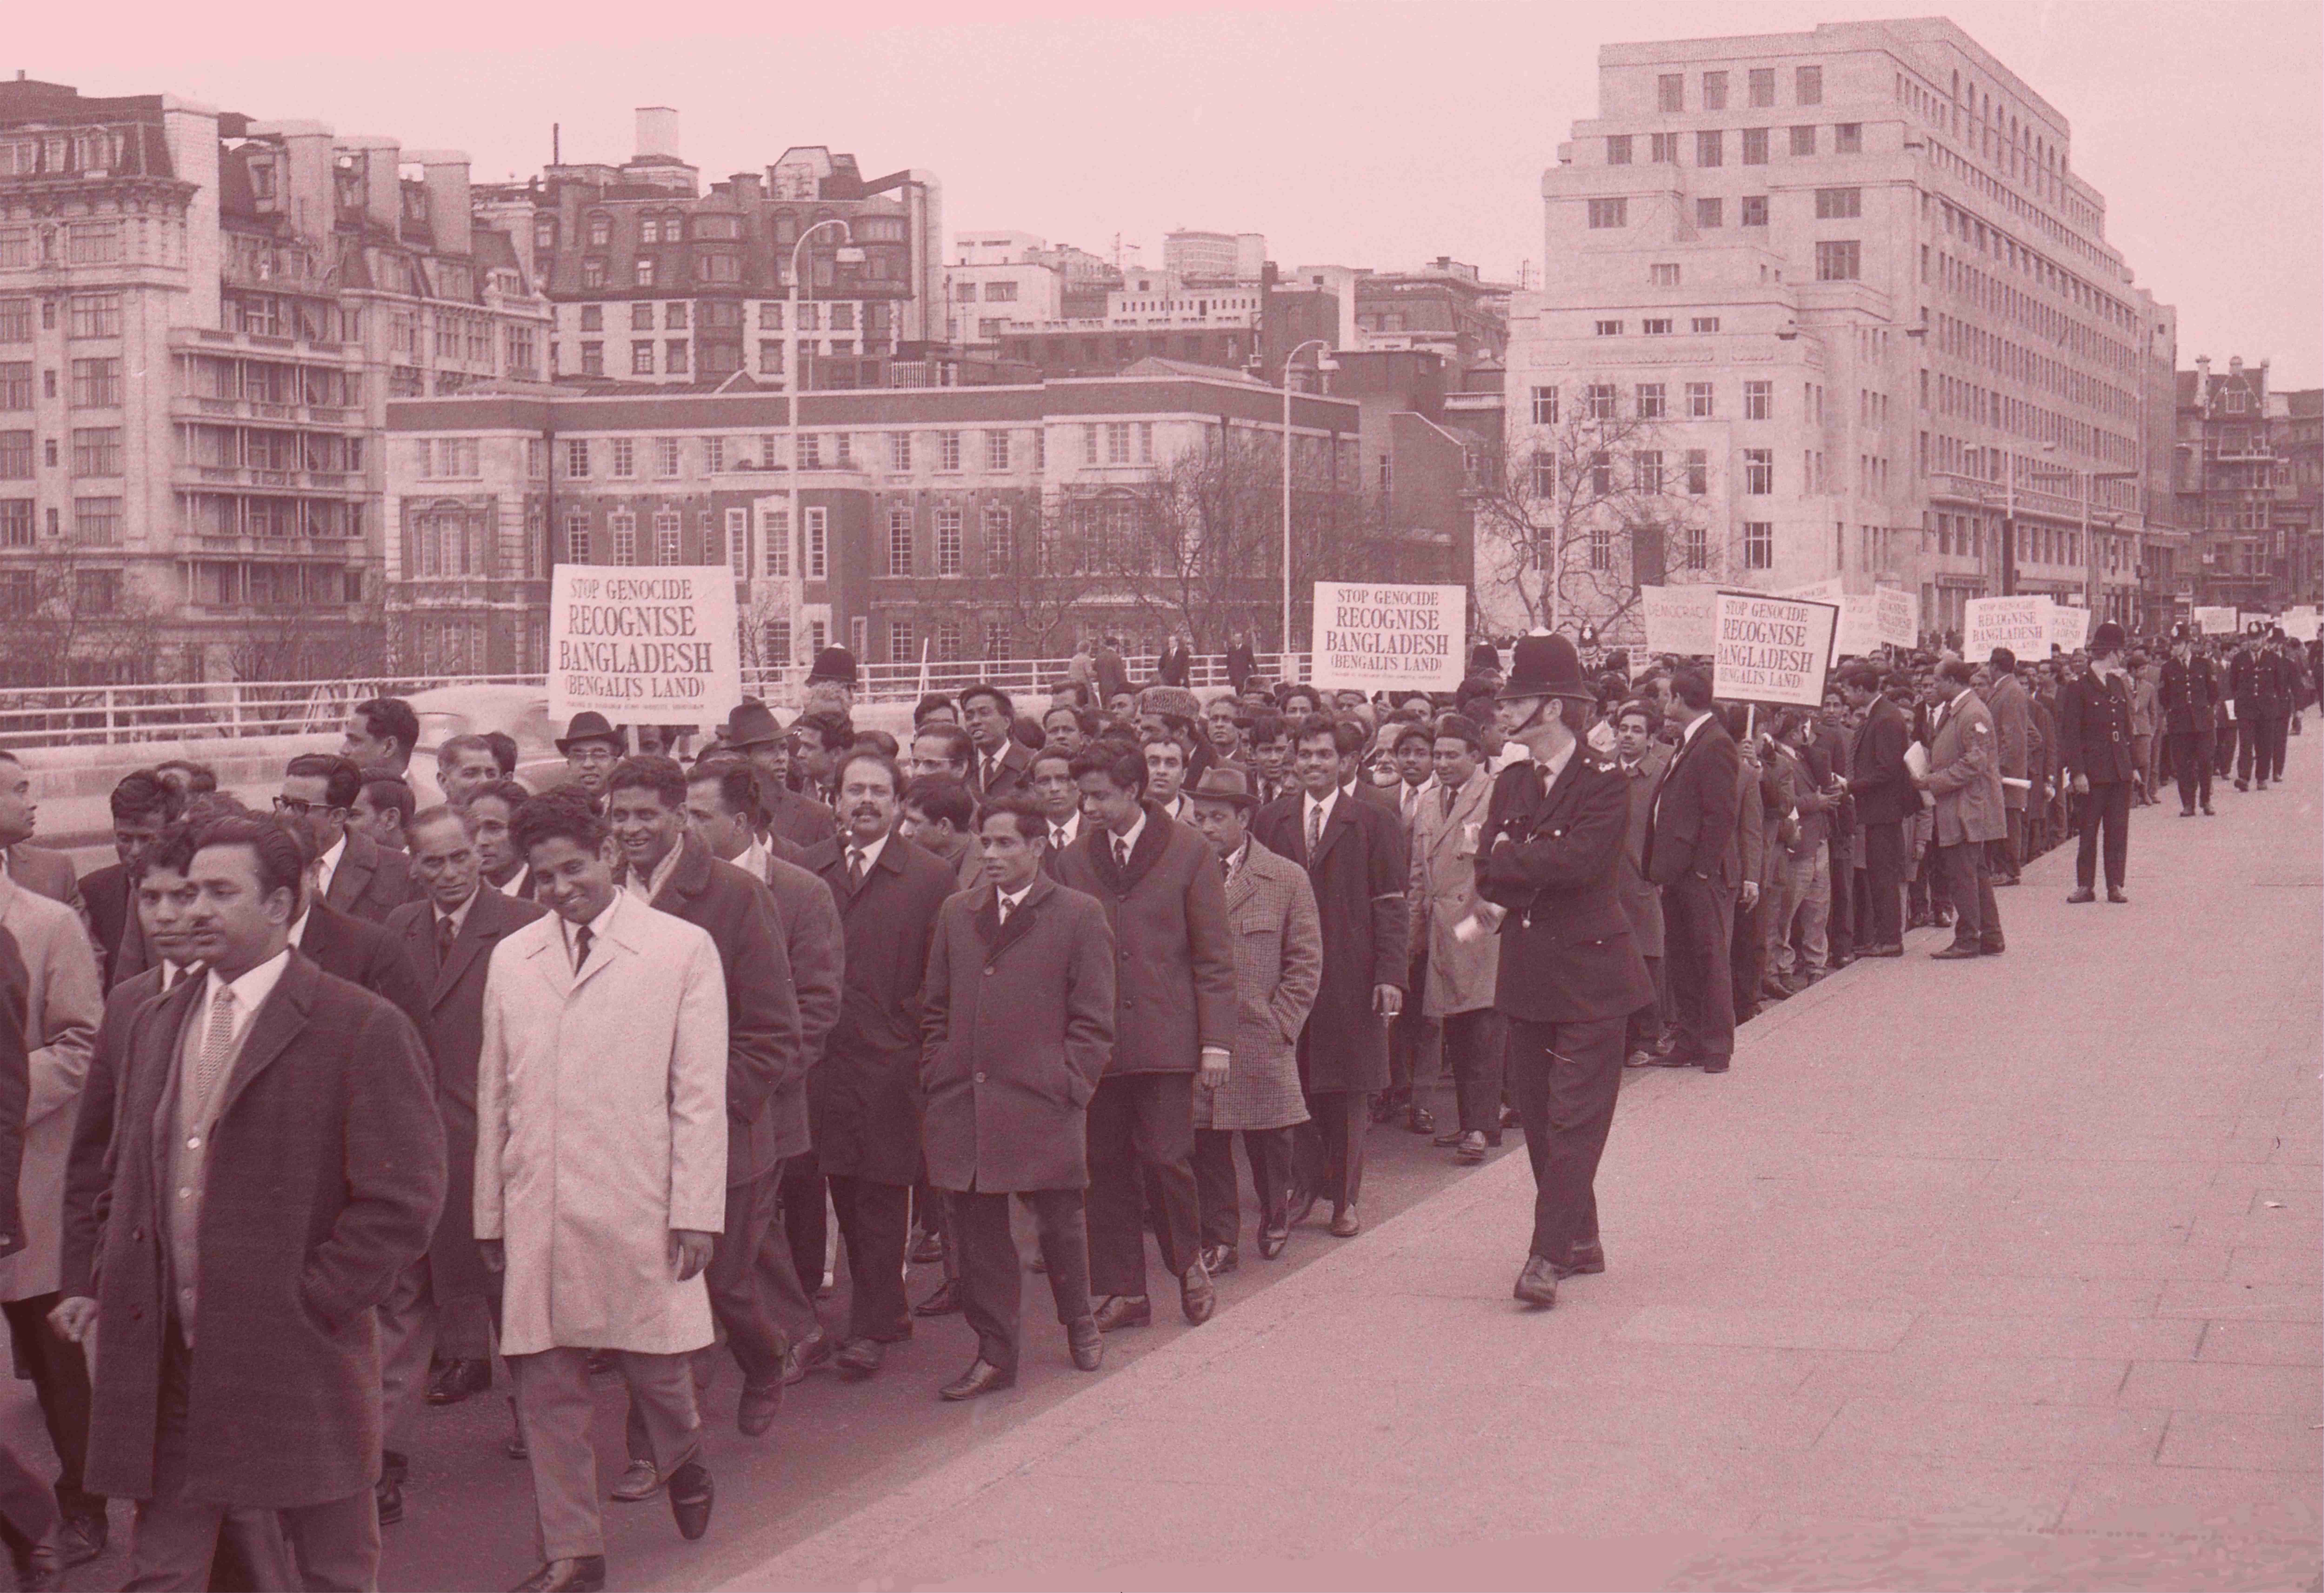 The Recognise Bangladesh rally took place on April 4, 1971. It is estimated that there were 10,000 people in attendance with approximately 500 from Birmingham. Photo by Roger Gwynn.